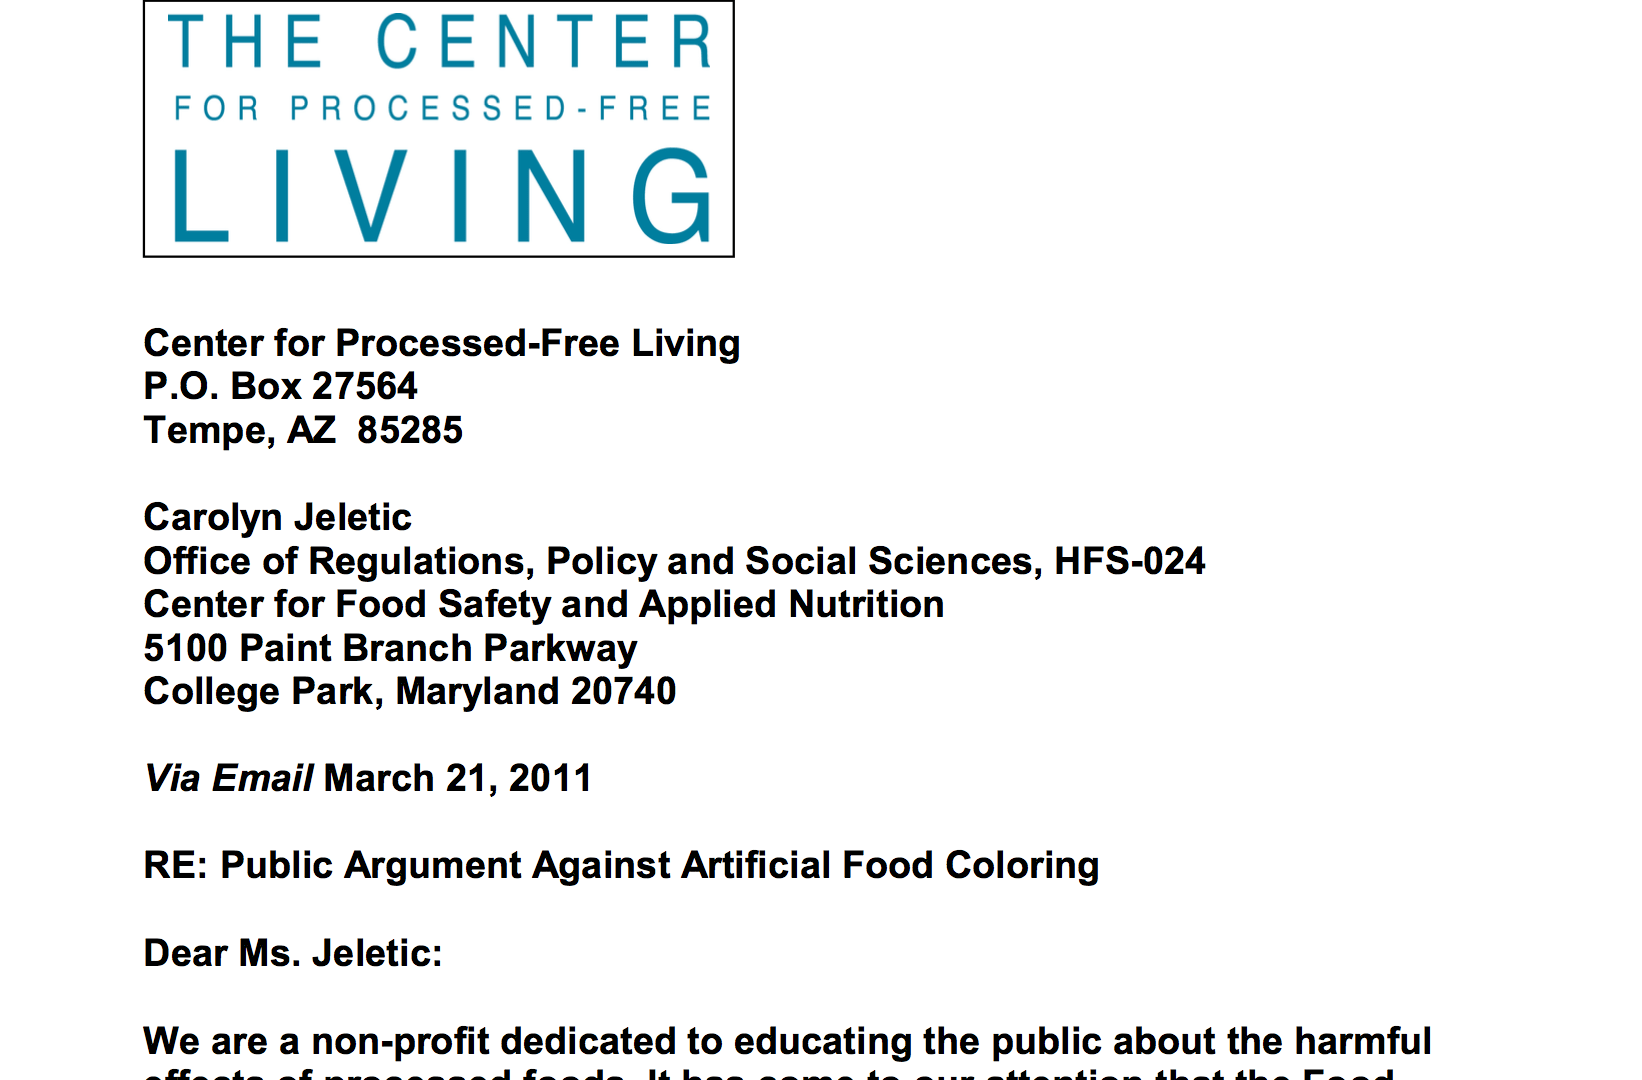 Center Submits Arguments Against Artificial Food Coloring